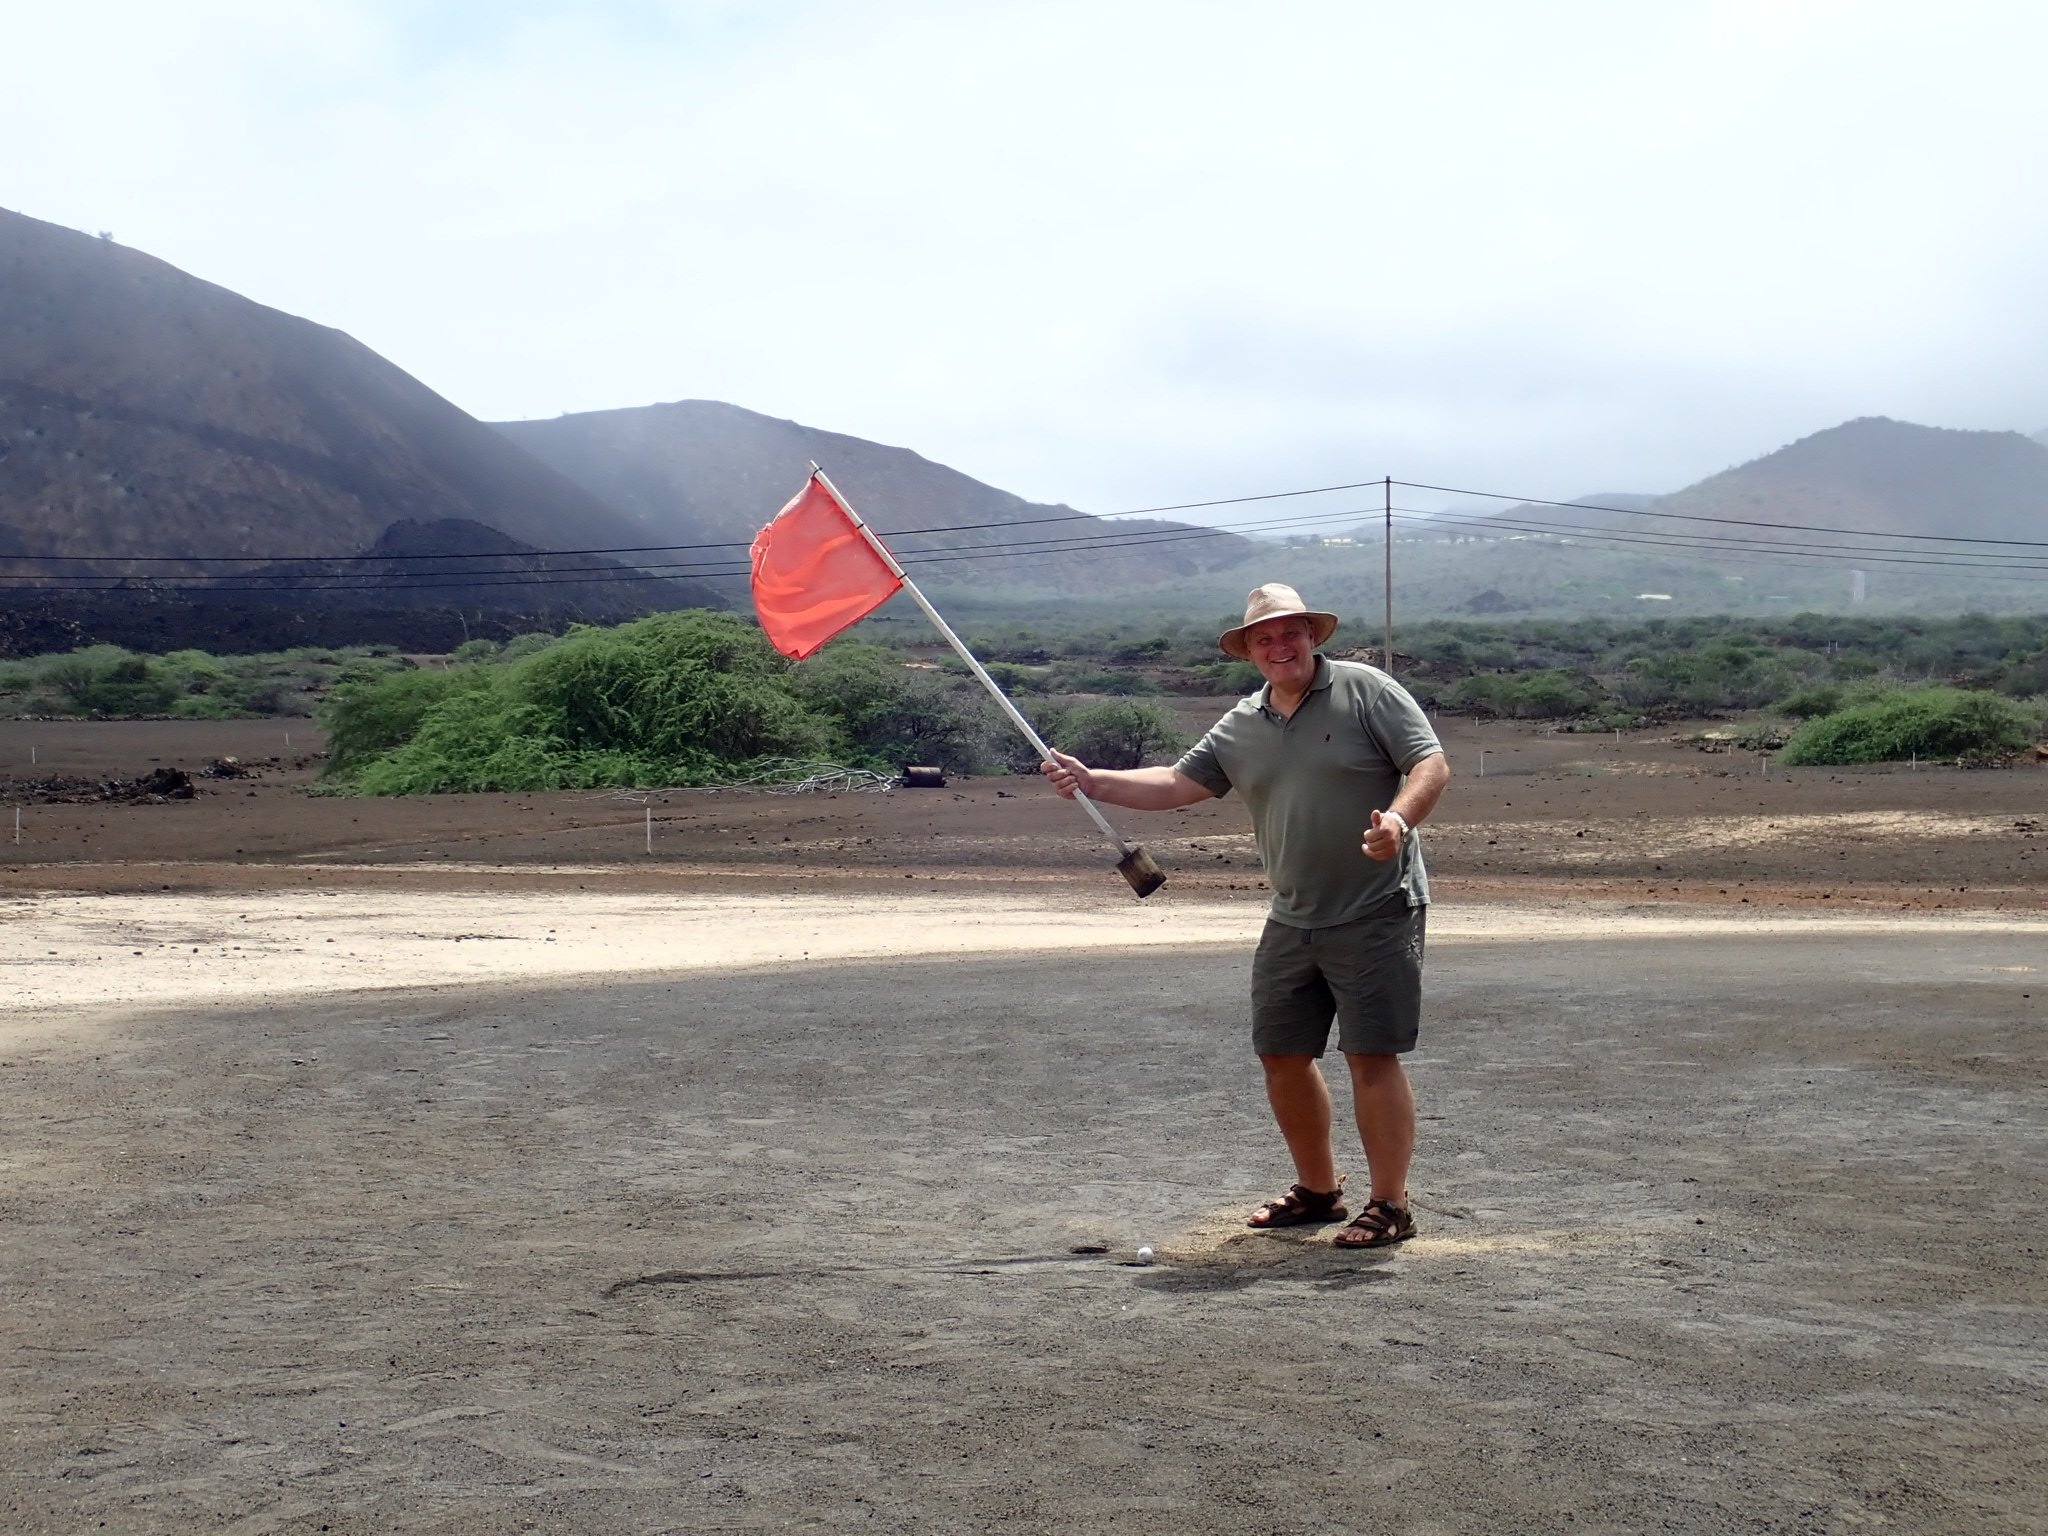 Oiled volcanic golf course